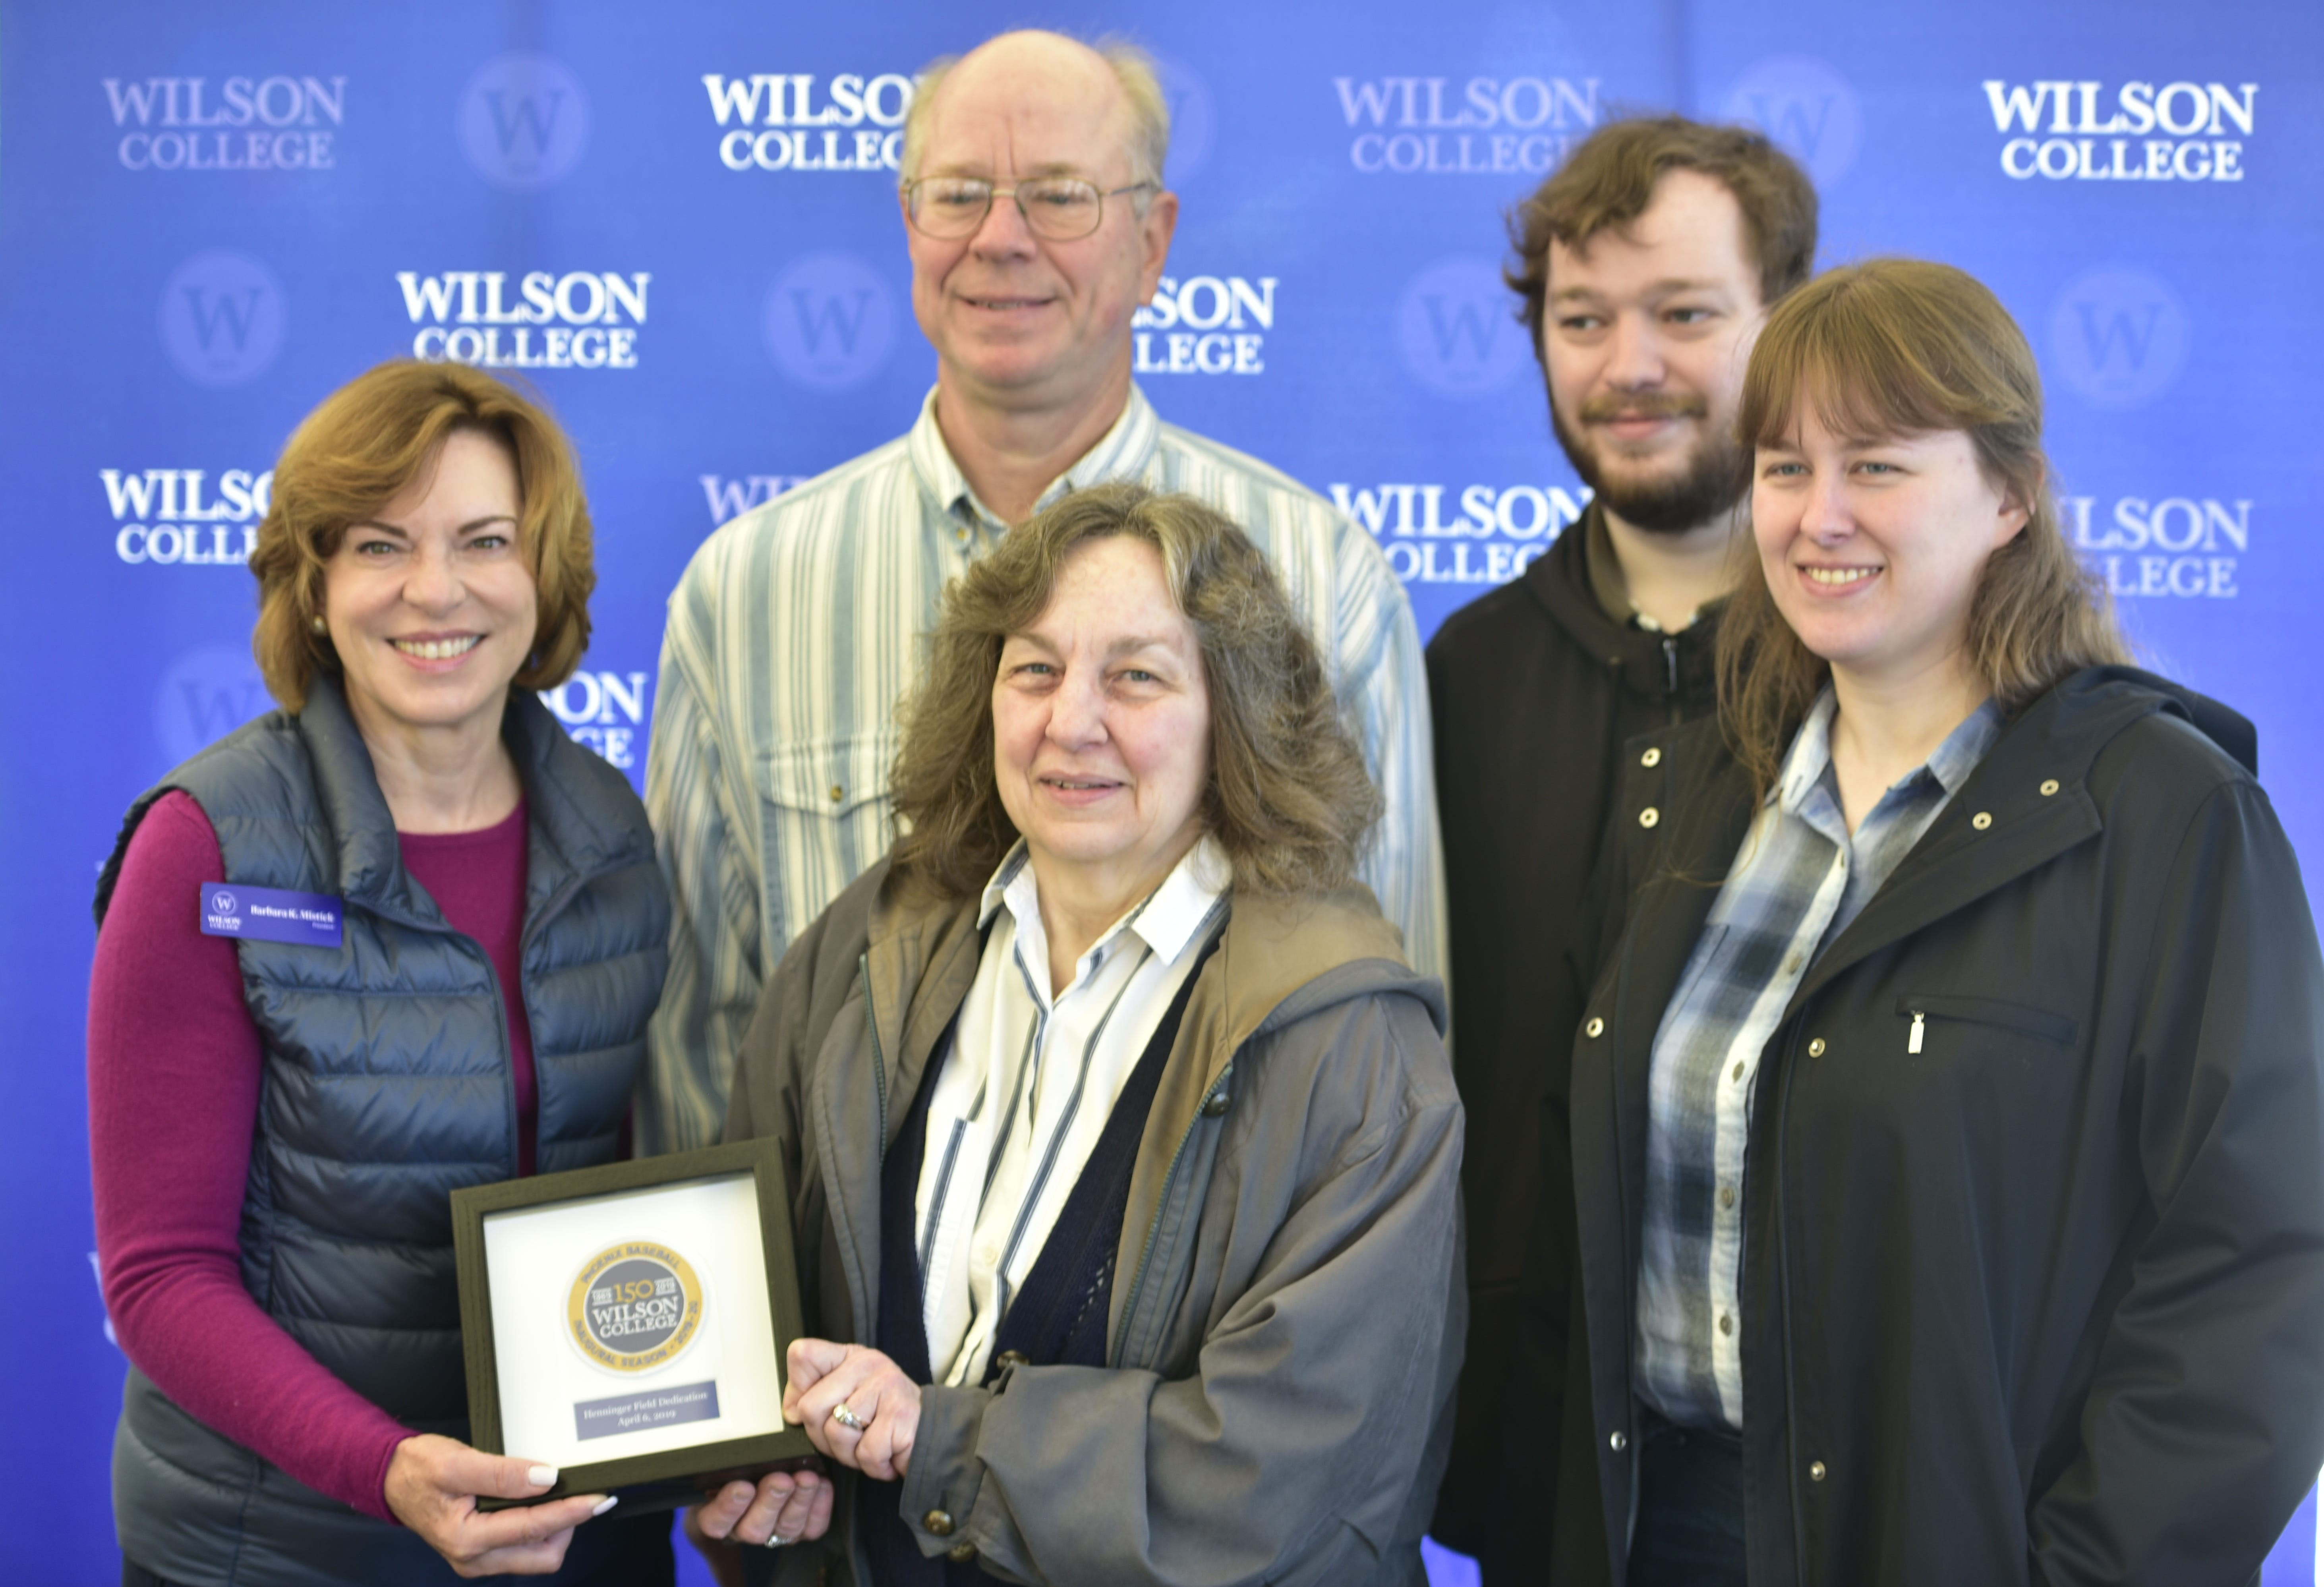 Wilson president Dr. Barbara K. Mistick poses with the Henninger family following a ceremony dedicating Henninger Field to the Wilson baseball program.